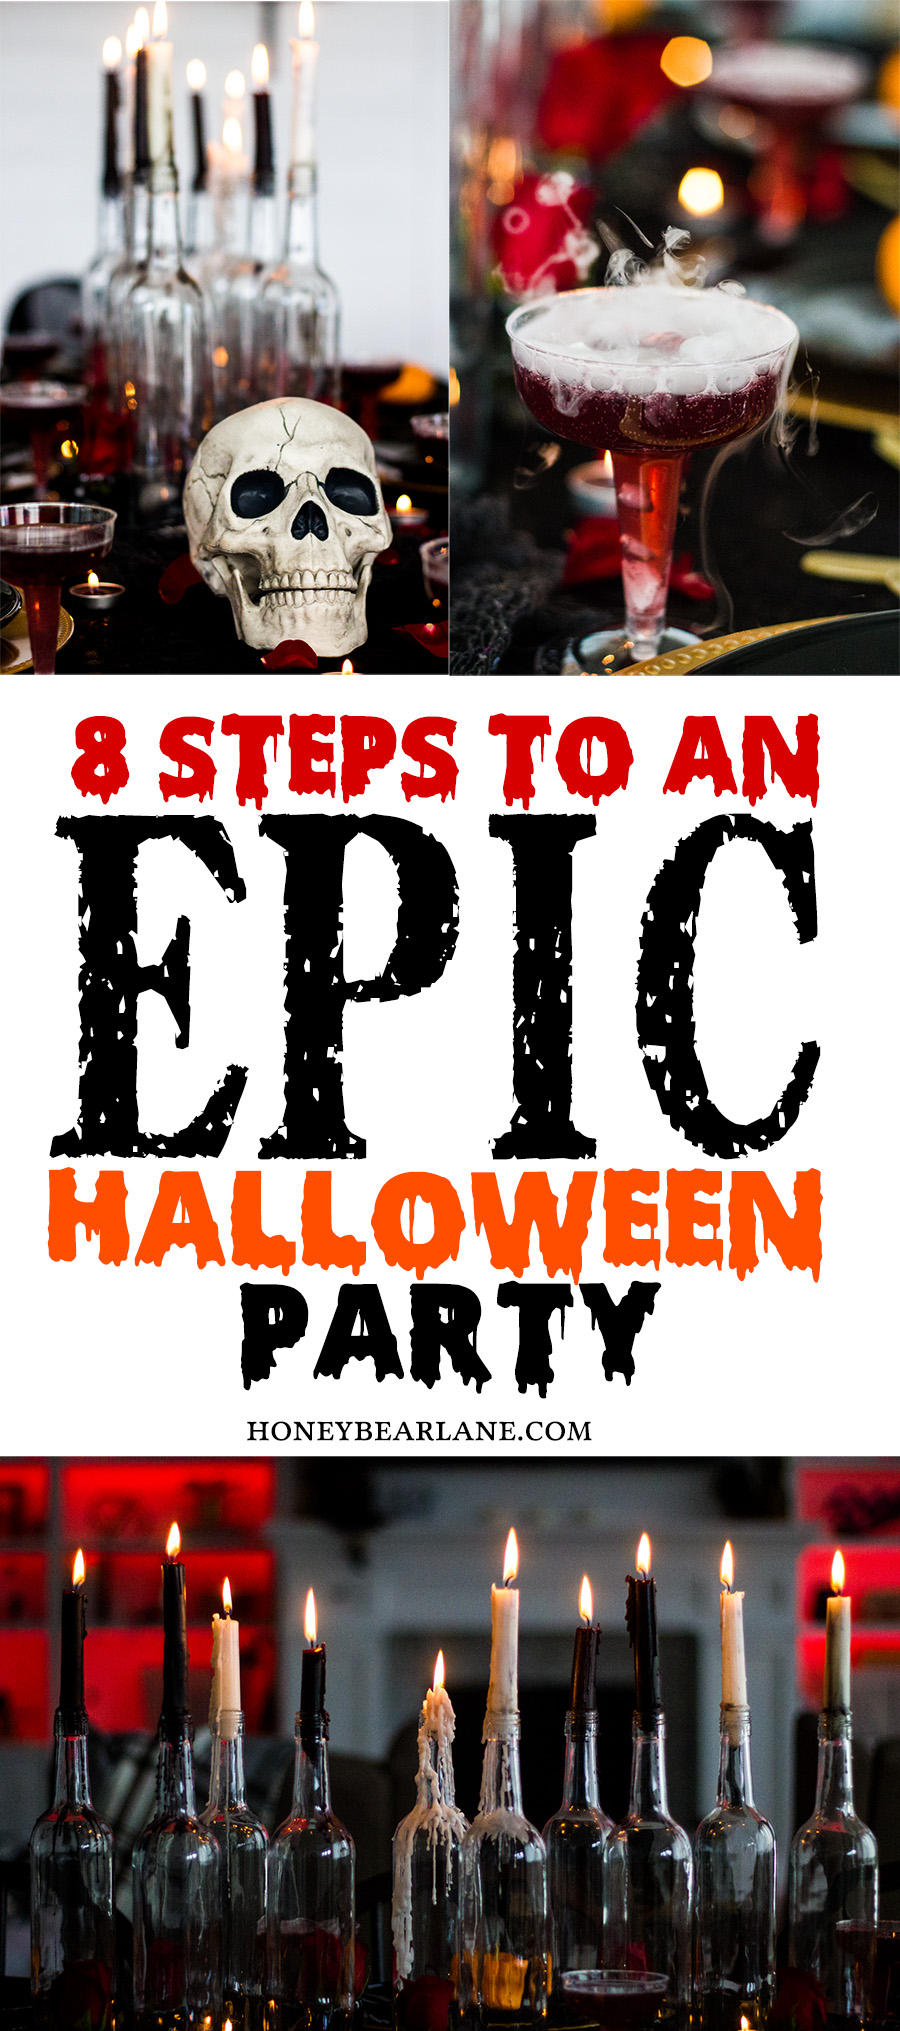 8 steps to an epic halloween party